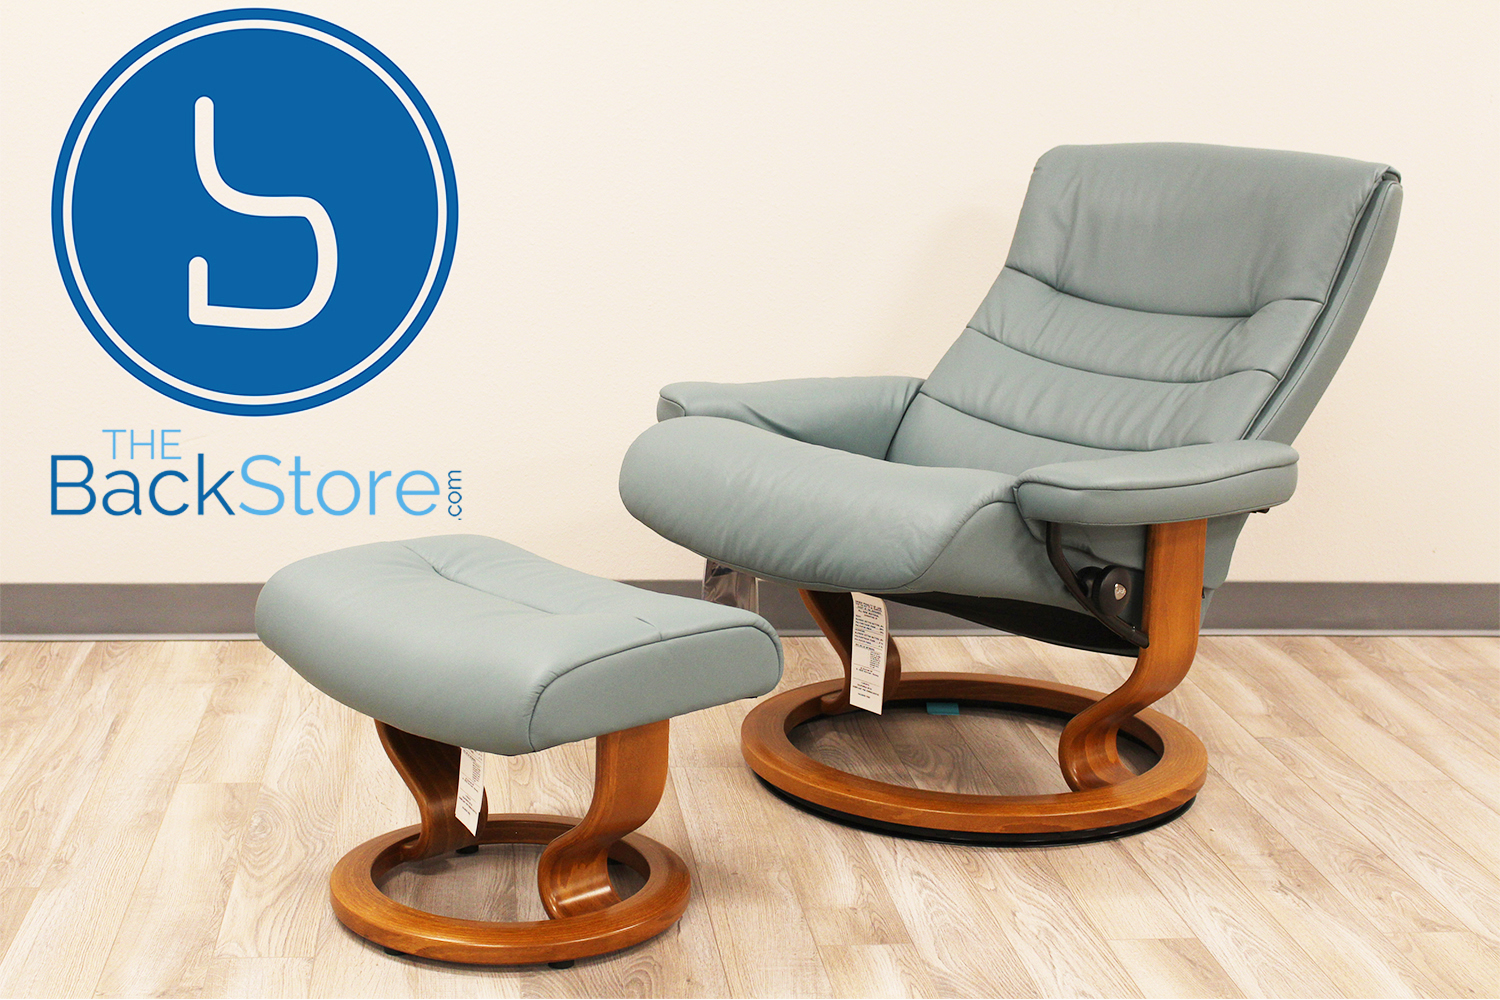 Stressless Sessel Ebay Stressless Sessel Grn Top Mass Stressless Sessel Schn Kleine